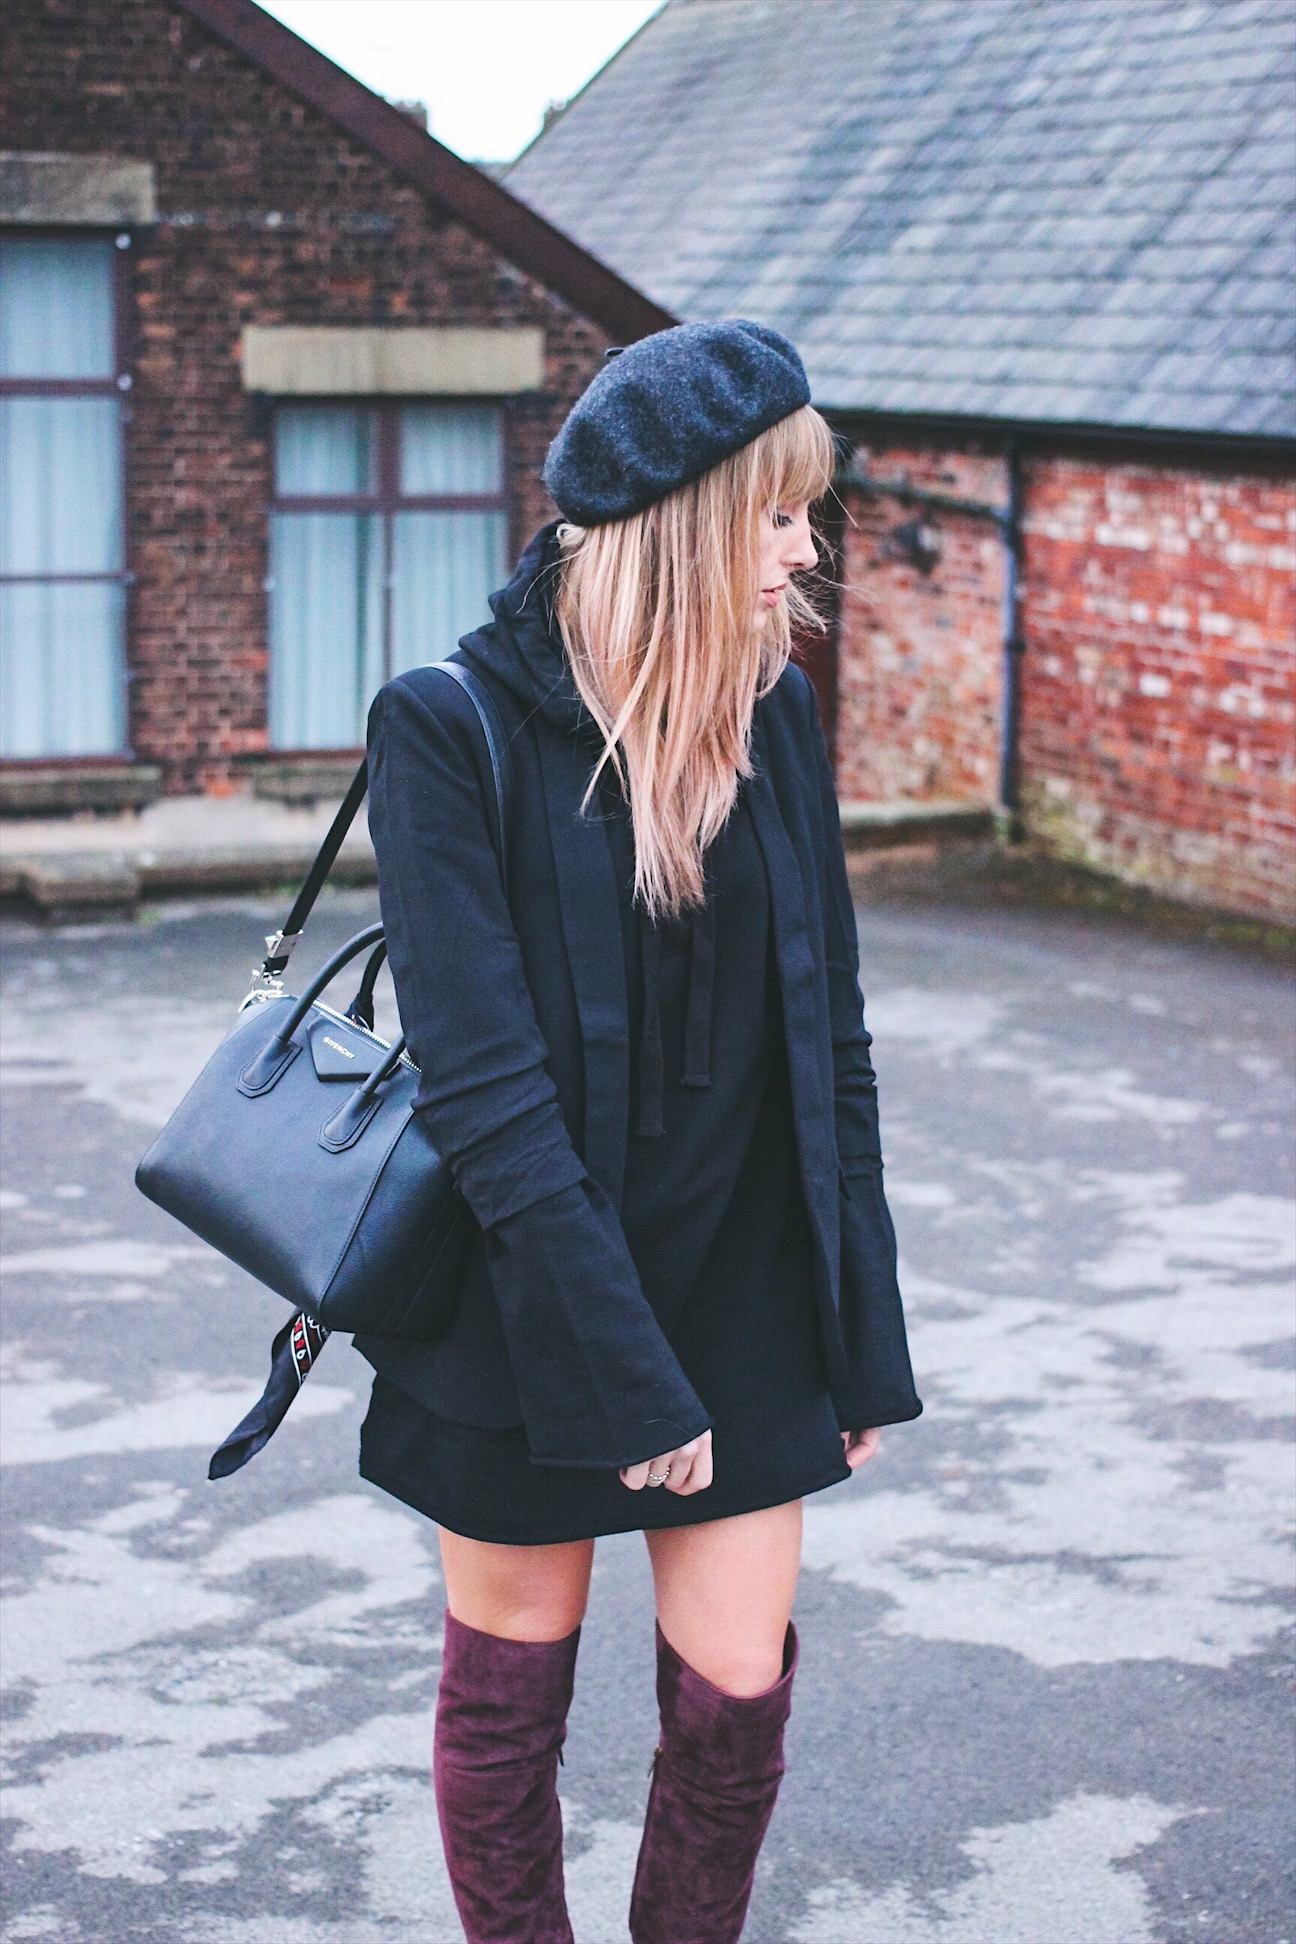 How to wear a hooded LBJD dress - Little Black Jumper Dress